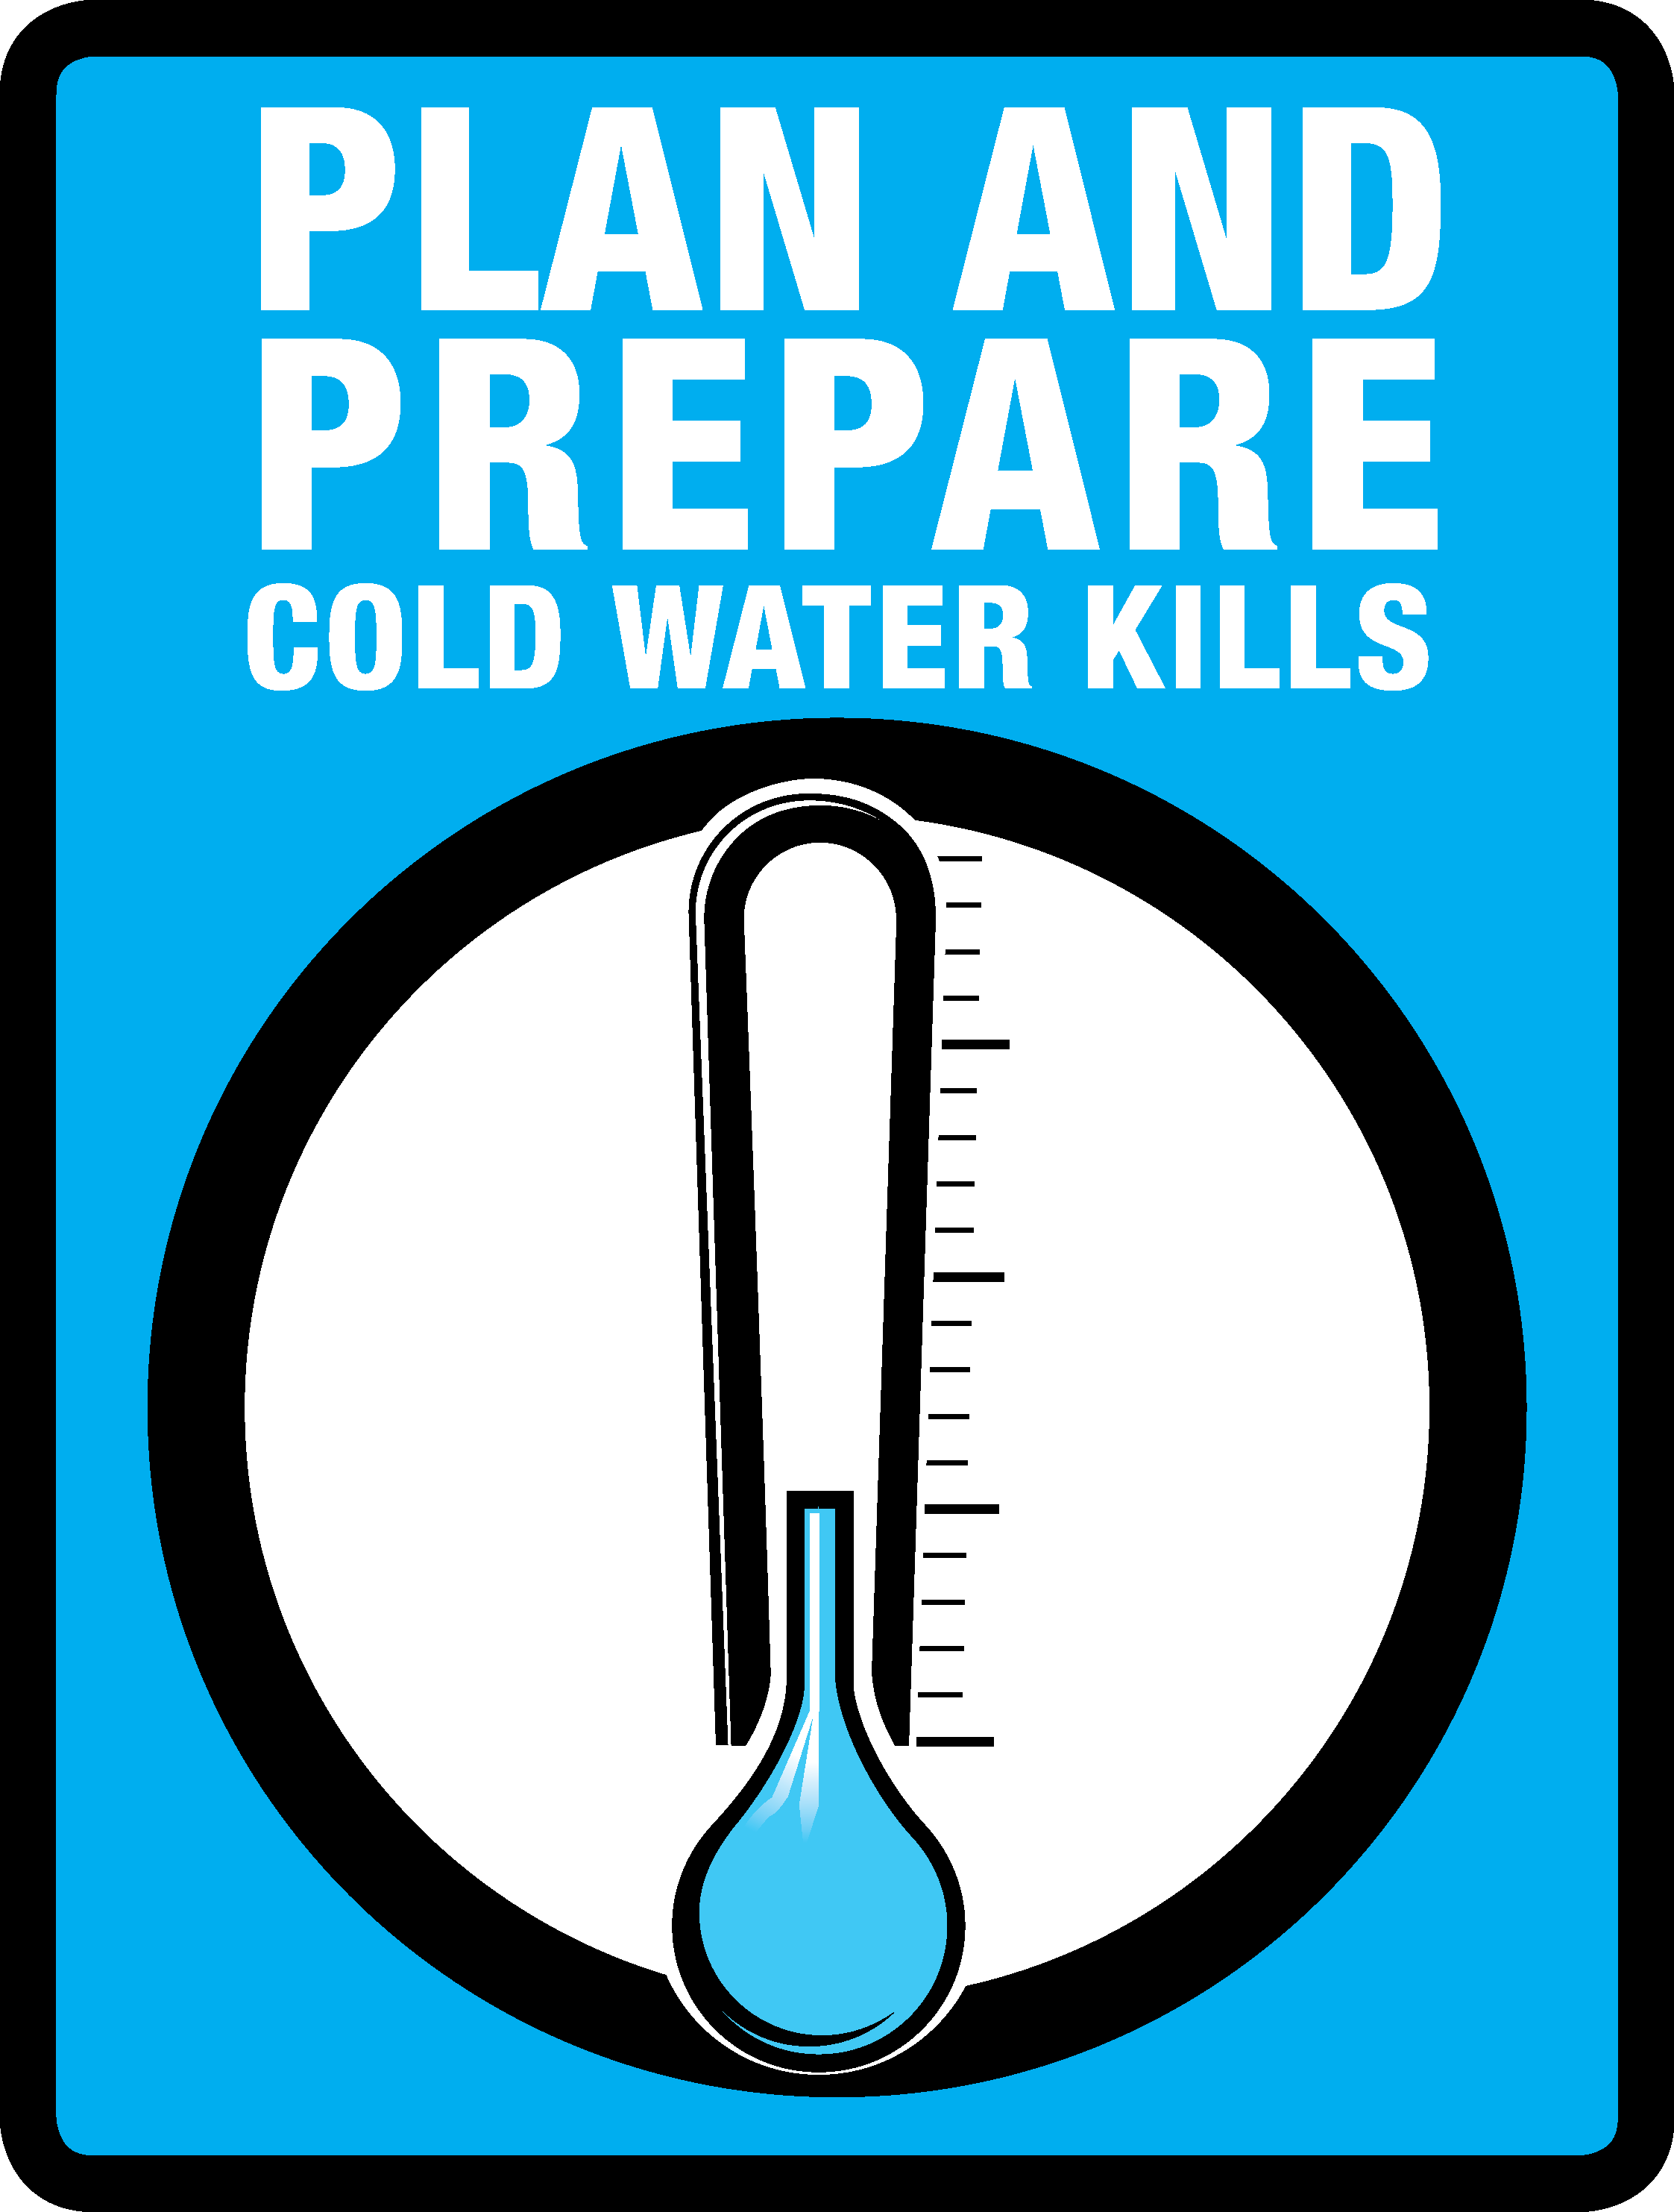 Cold weather boating: Capsize & hypothermia - Safety campaigns